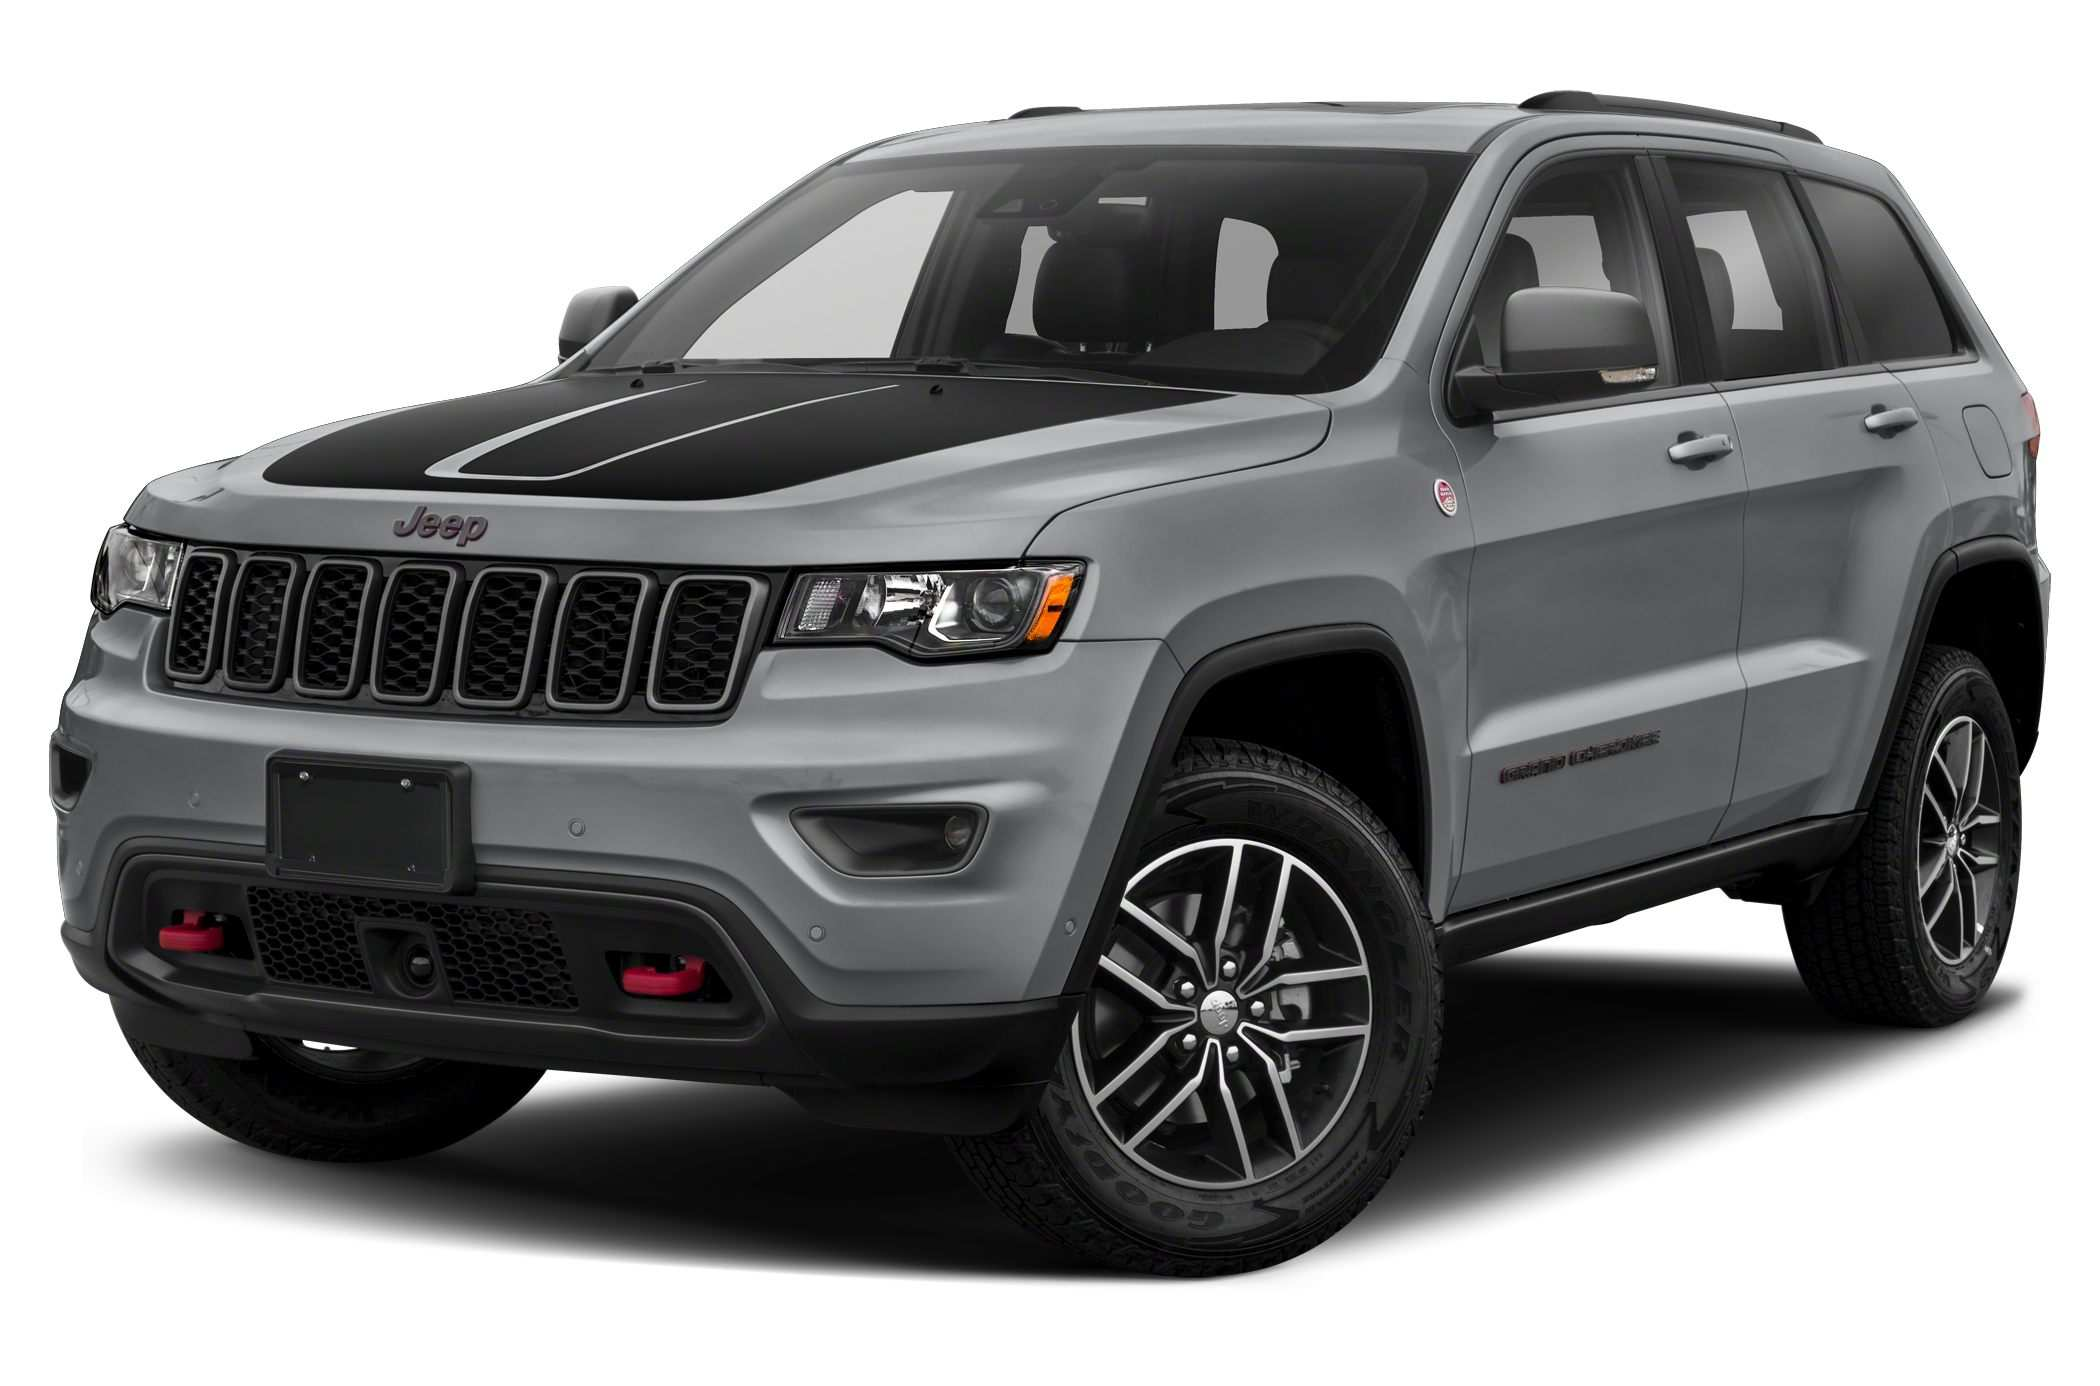 28 All New 2019 Grand Cherokee Redesign And Review